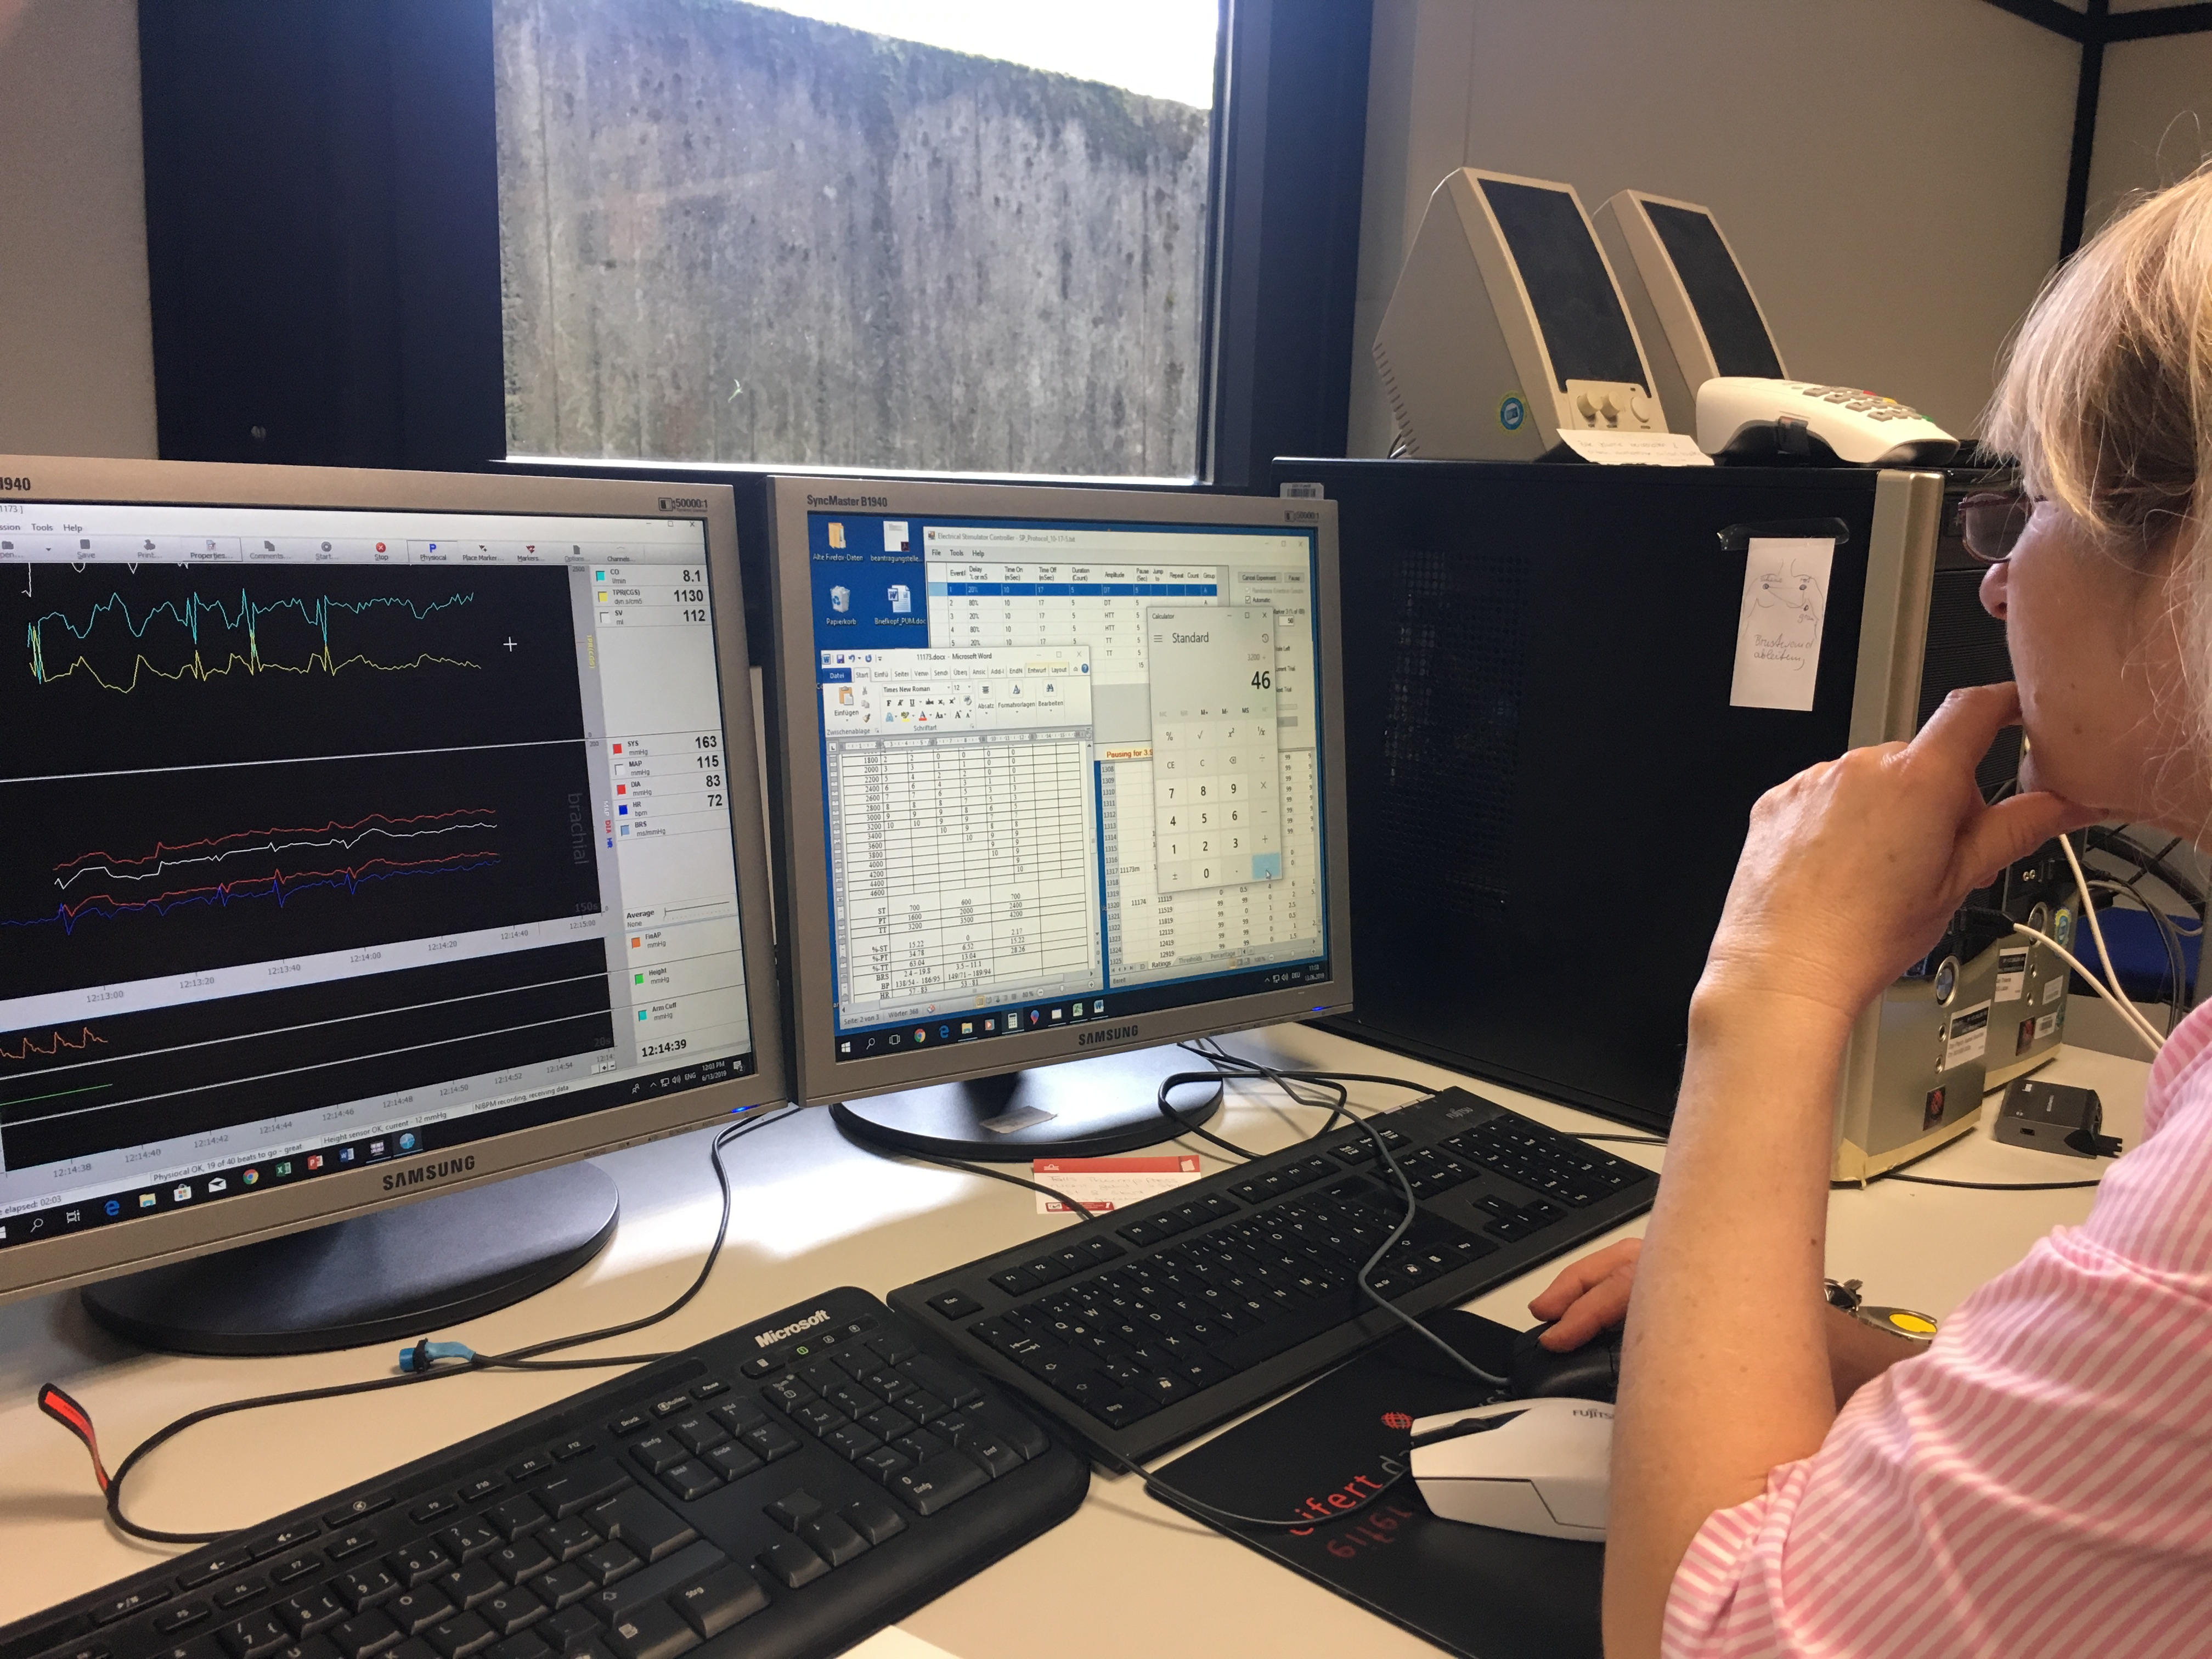 researcher looking at two screens